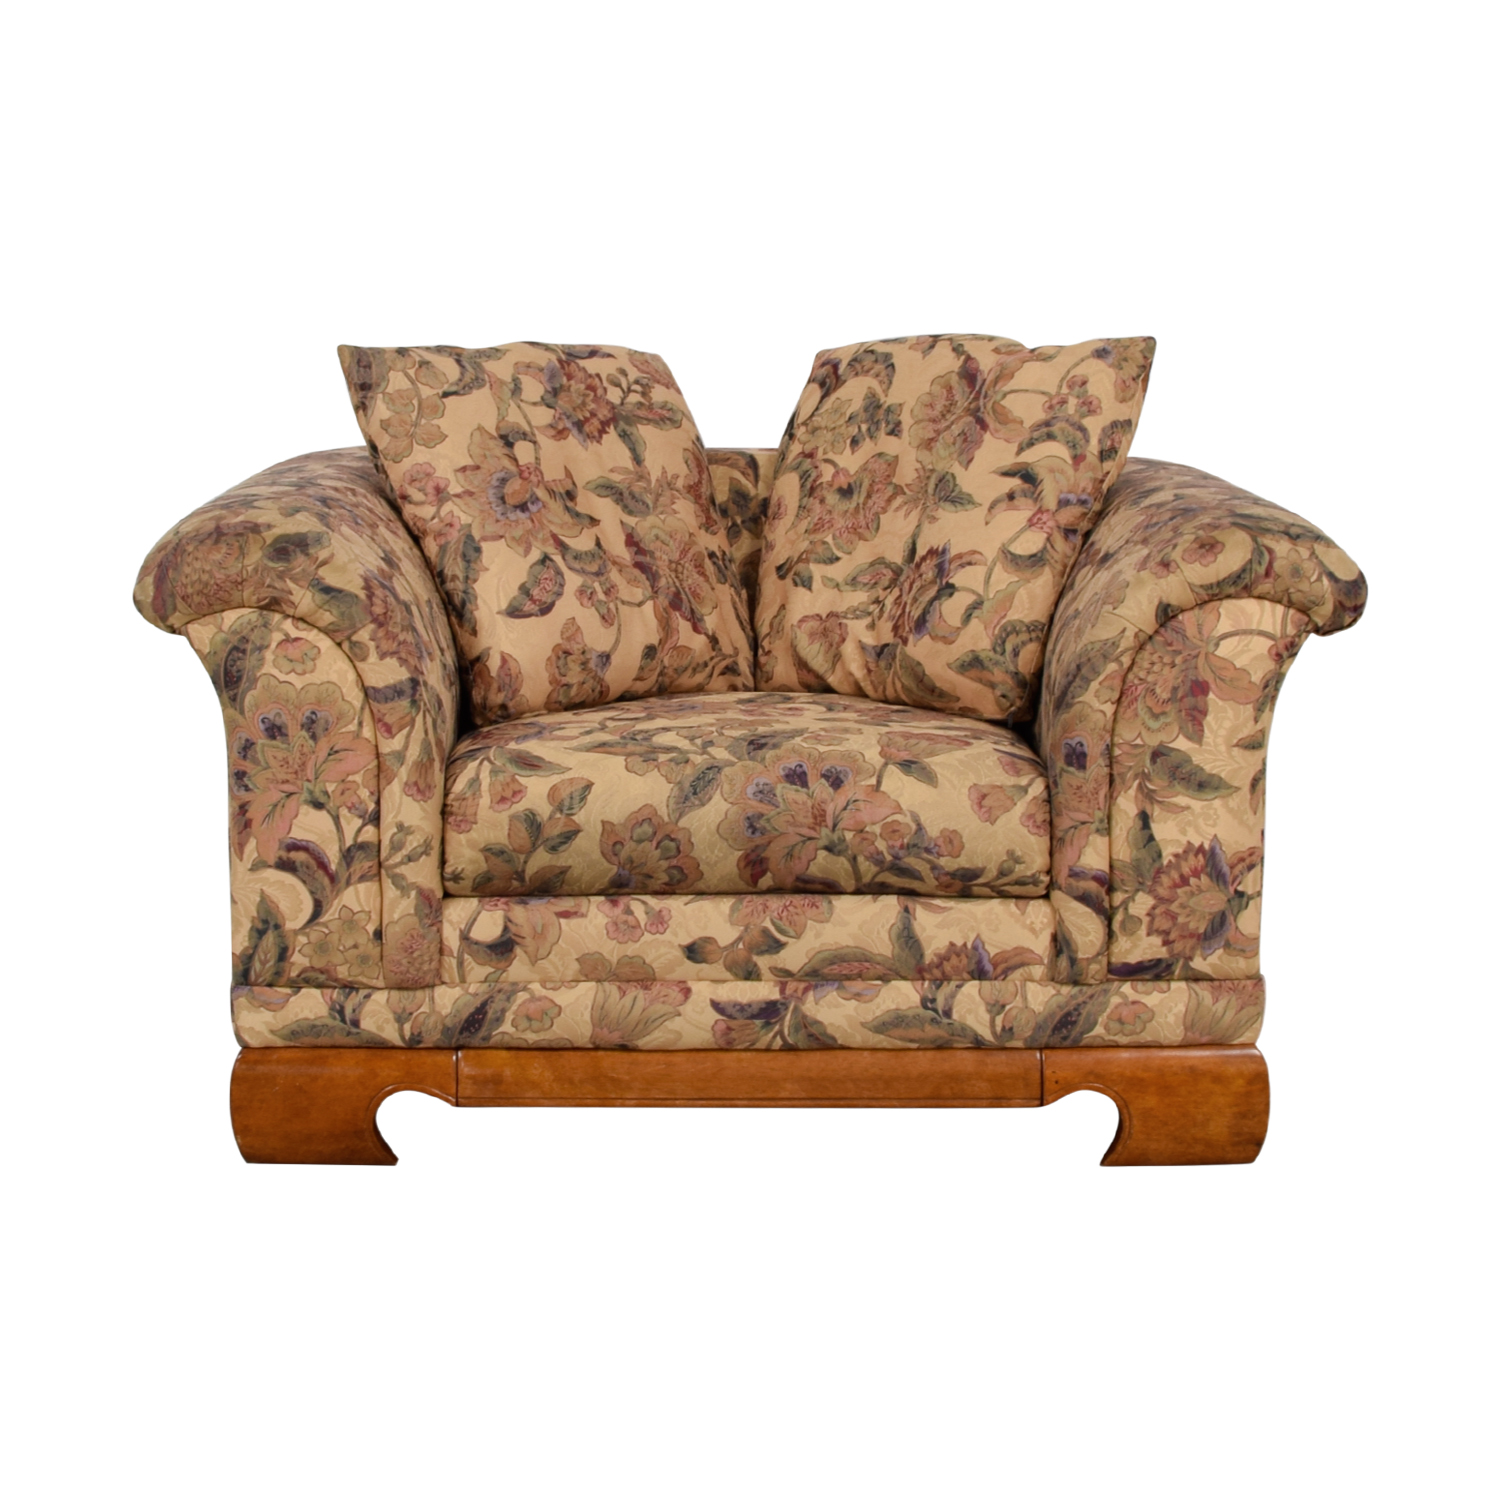 Sealy Furniture Floral Print Accent Chair / Loveseats